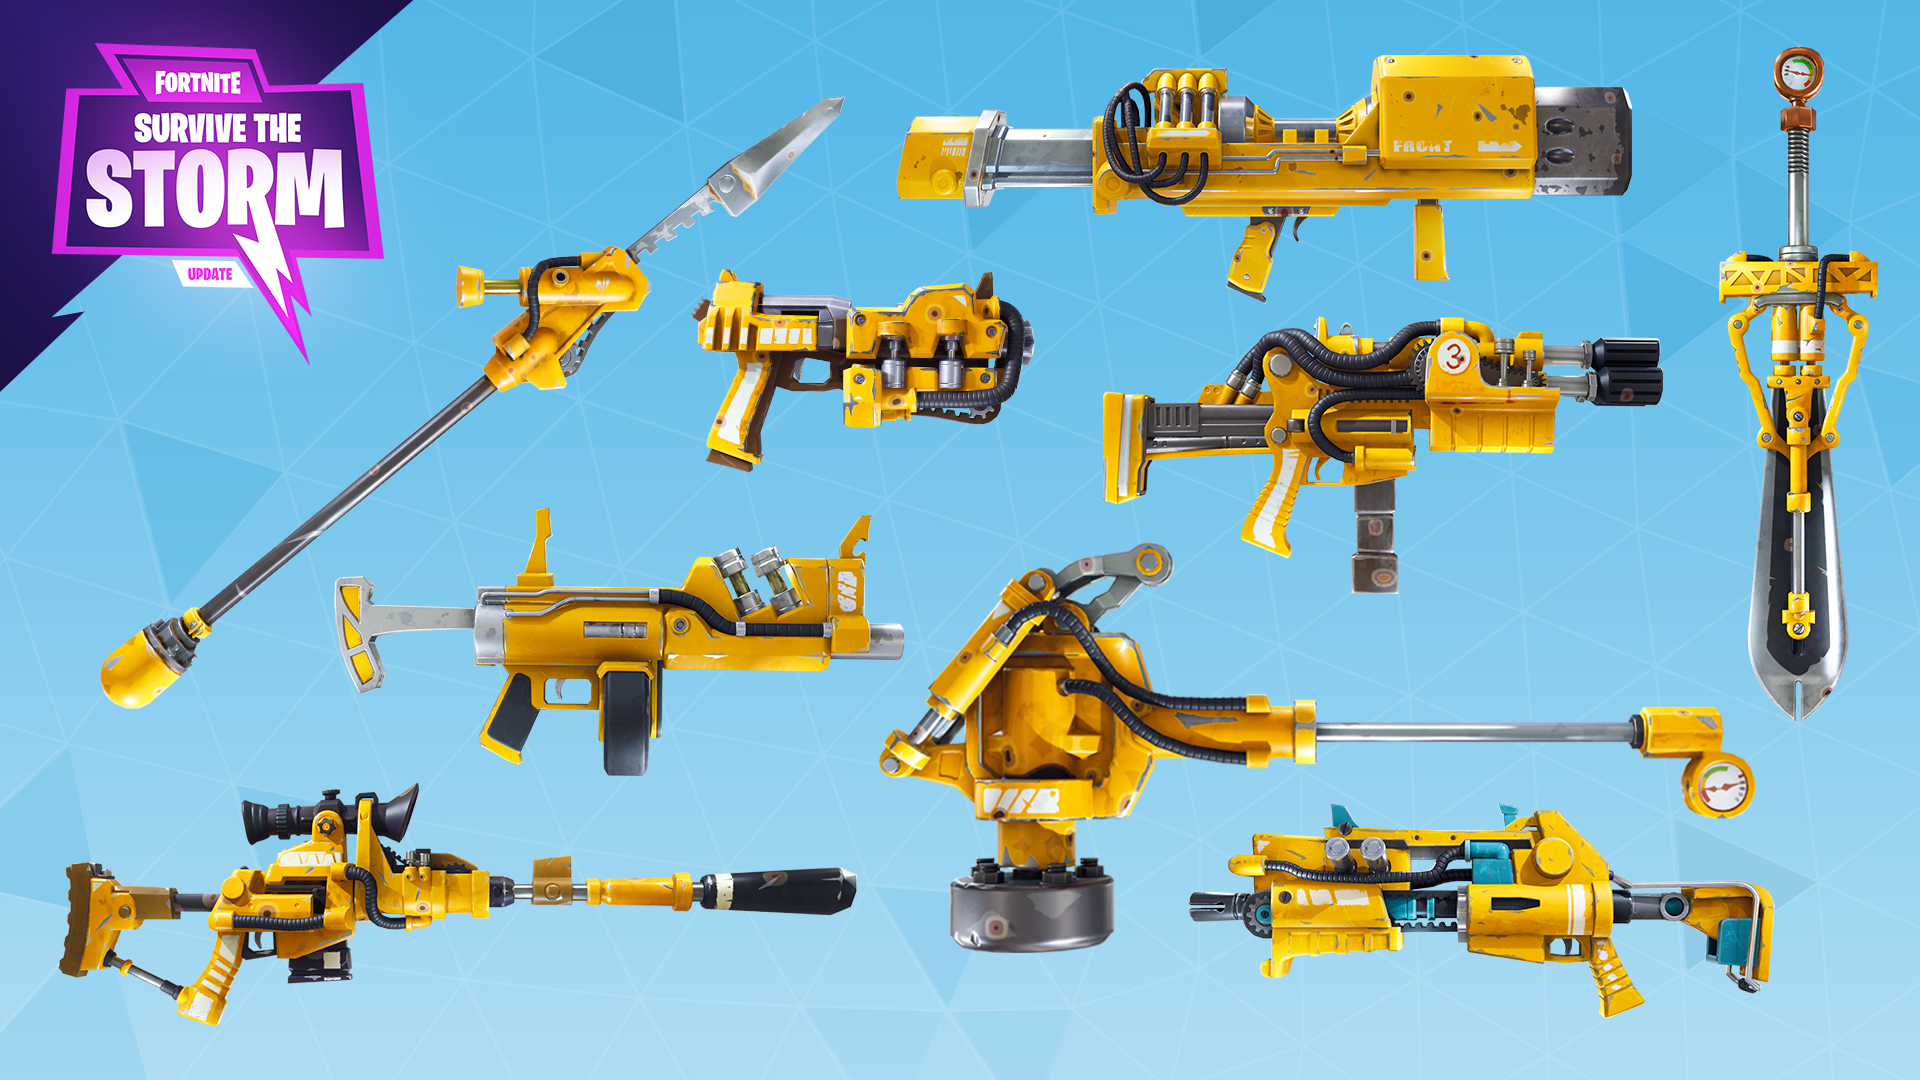 Fortnite%2Fblog%2Fsurvive-the-storm---release-notes%2FENG_Hydraulic-Weapons-1920x1080-ad292f92d2dfc6e13b61351cc6699db28b5a1b2e